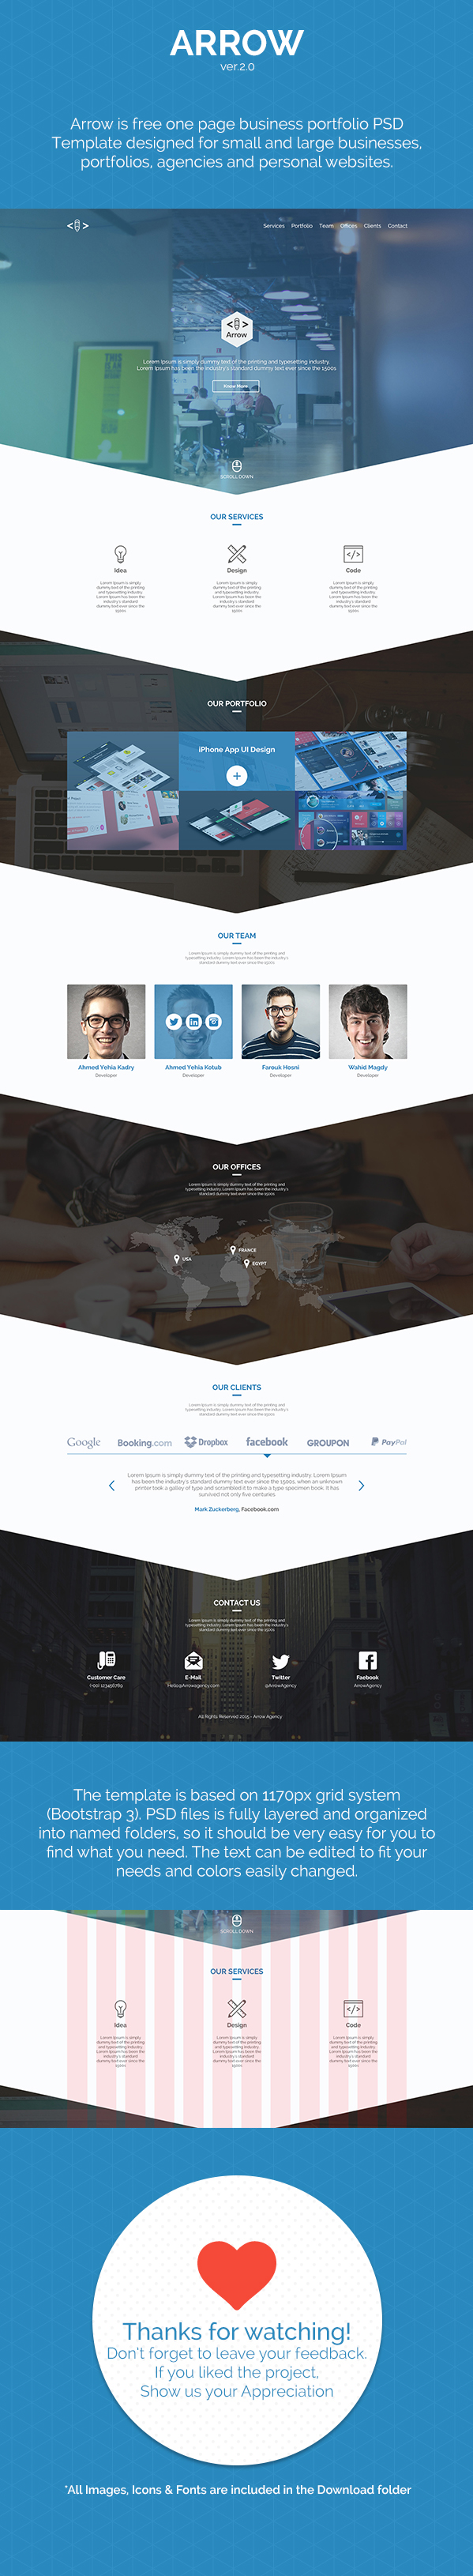 Arrow free one page business portfolio psd template on behance arrow free one page business portfolio psd template on behance wajeb Choice Image